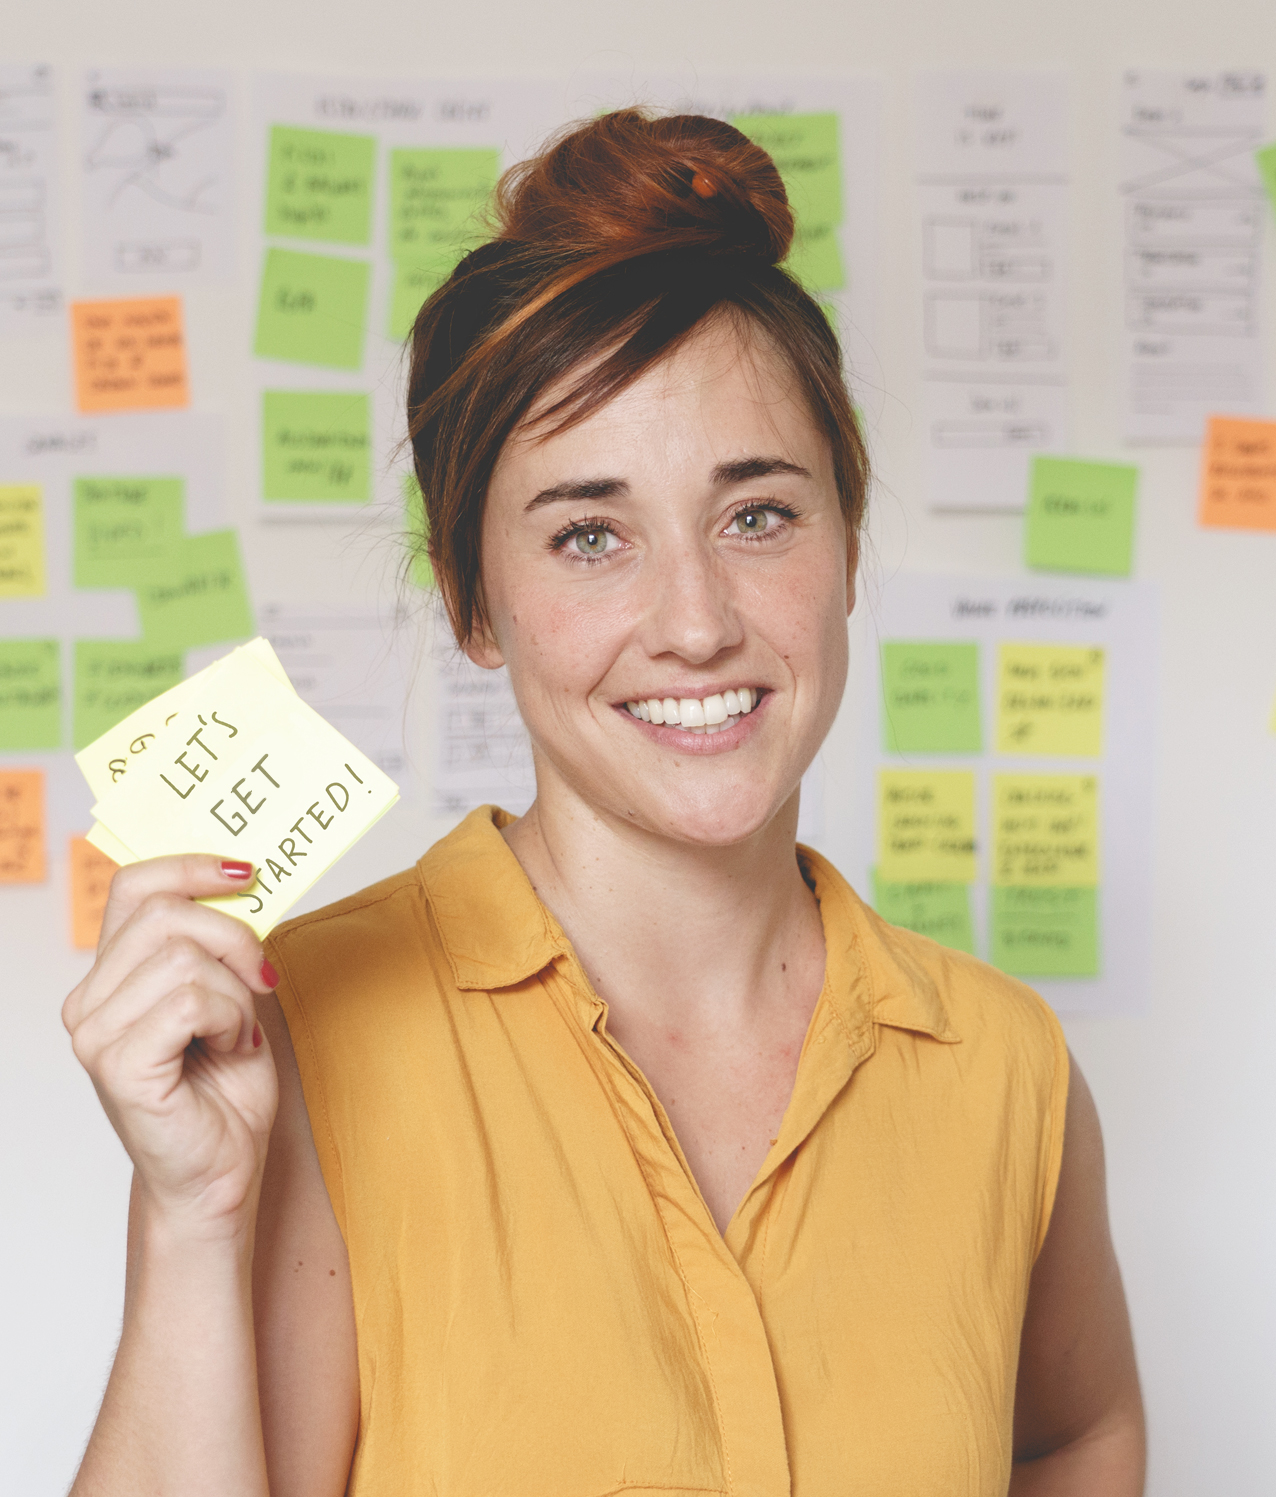 - My name is Virginia and I'm a Digital Product Designer. I'm passionate about designing outstanding experiences based on Human-centered design. And, I do this while minimising business-risks and build-costs.